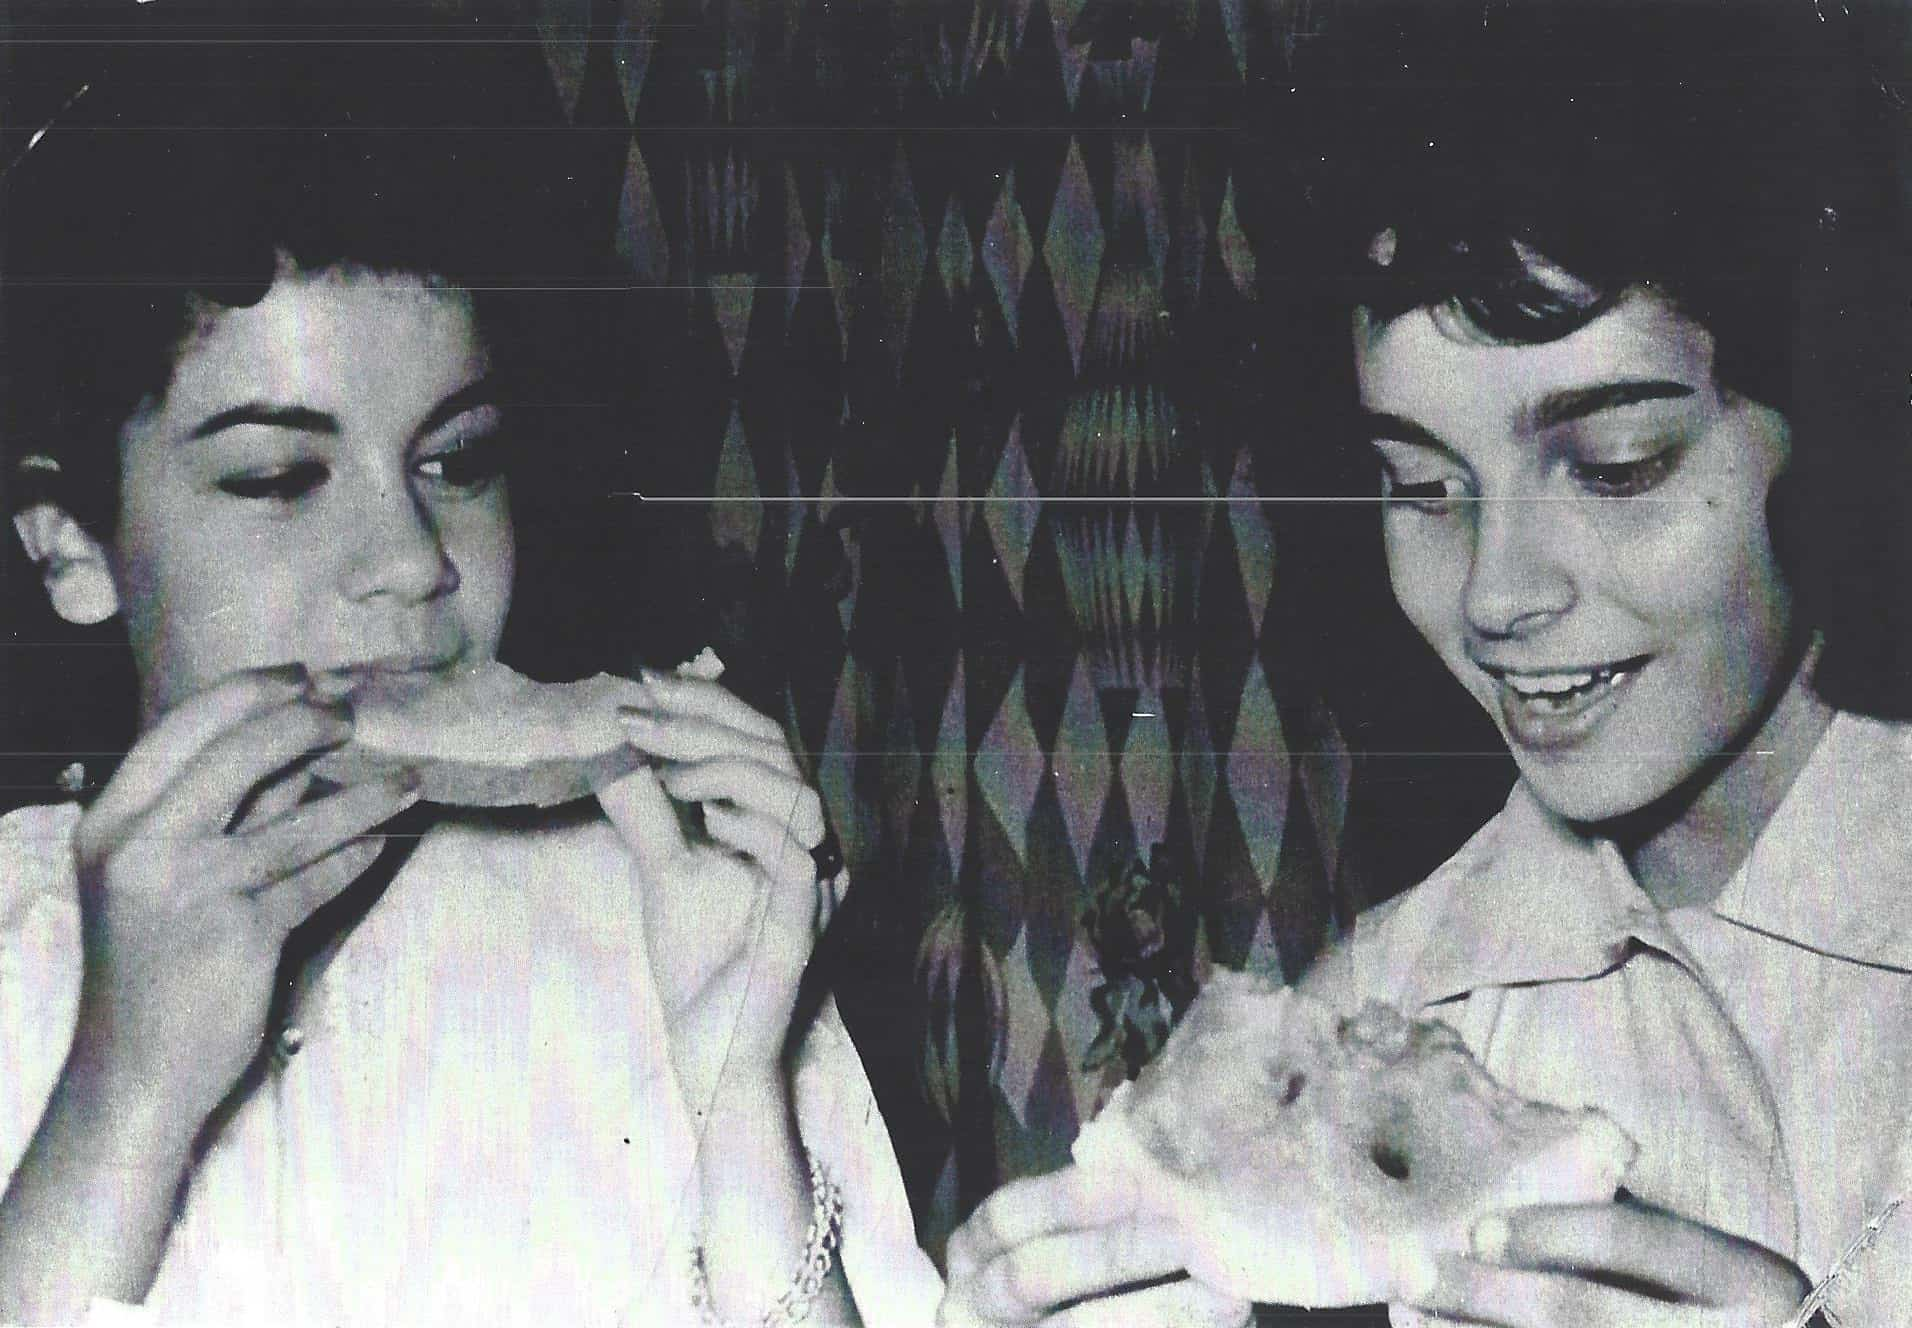 With Annette Funicello